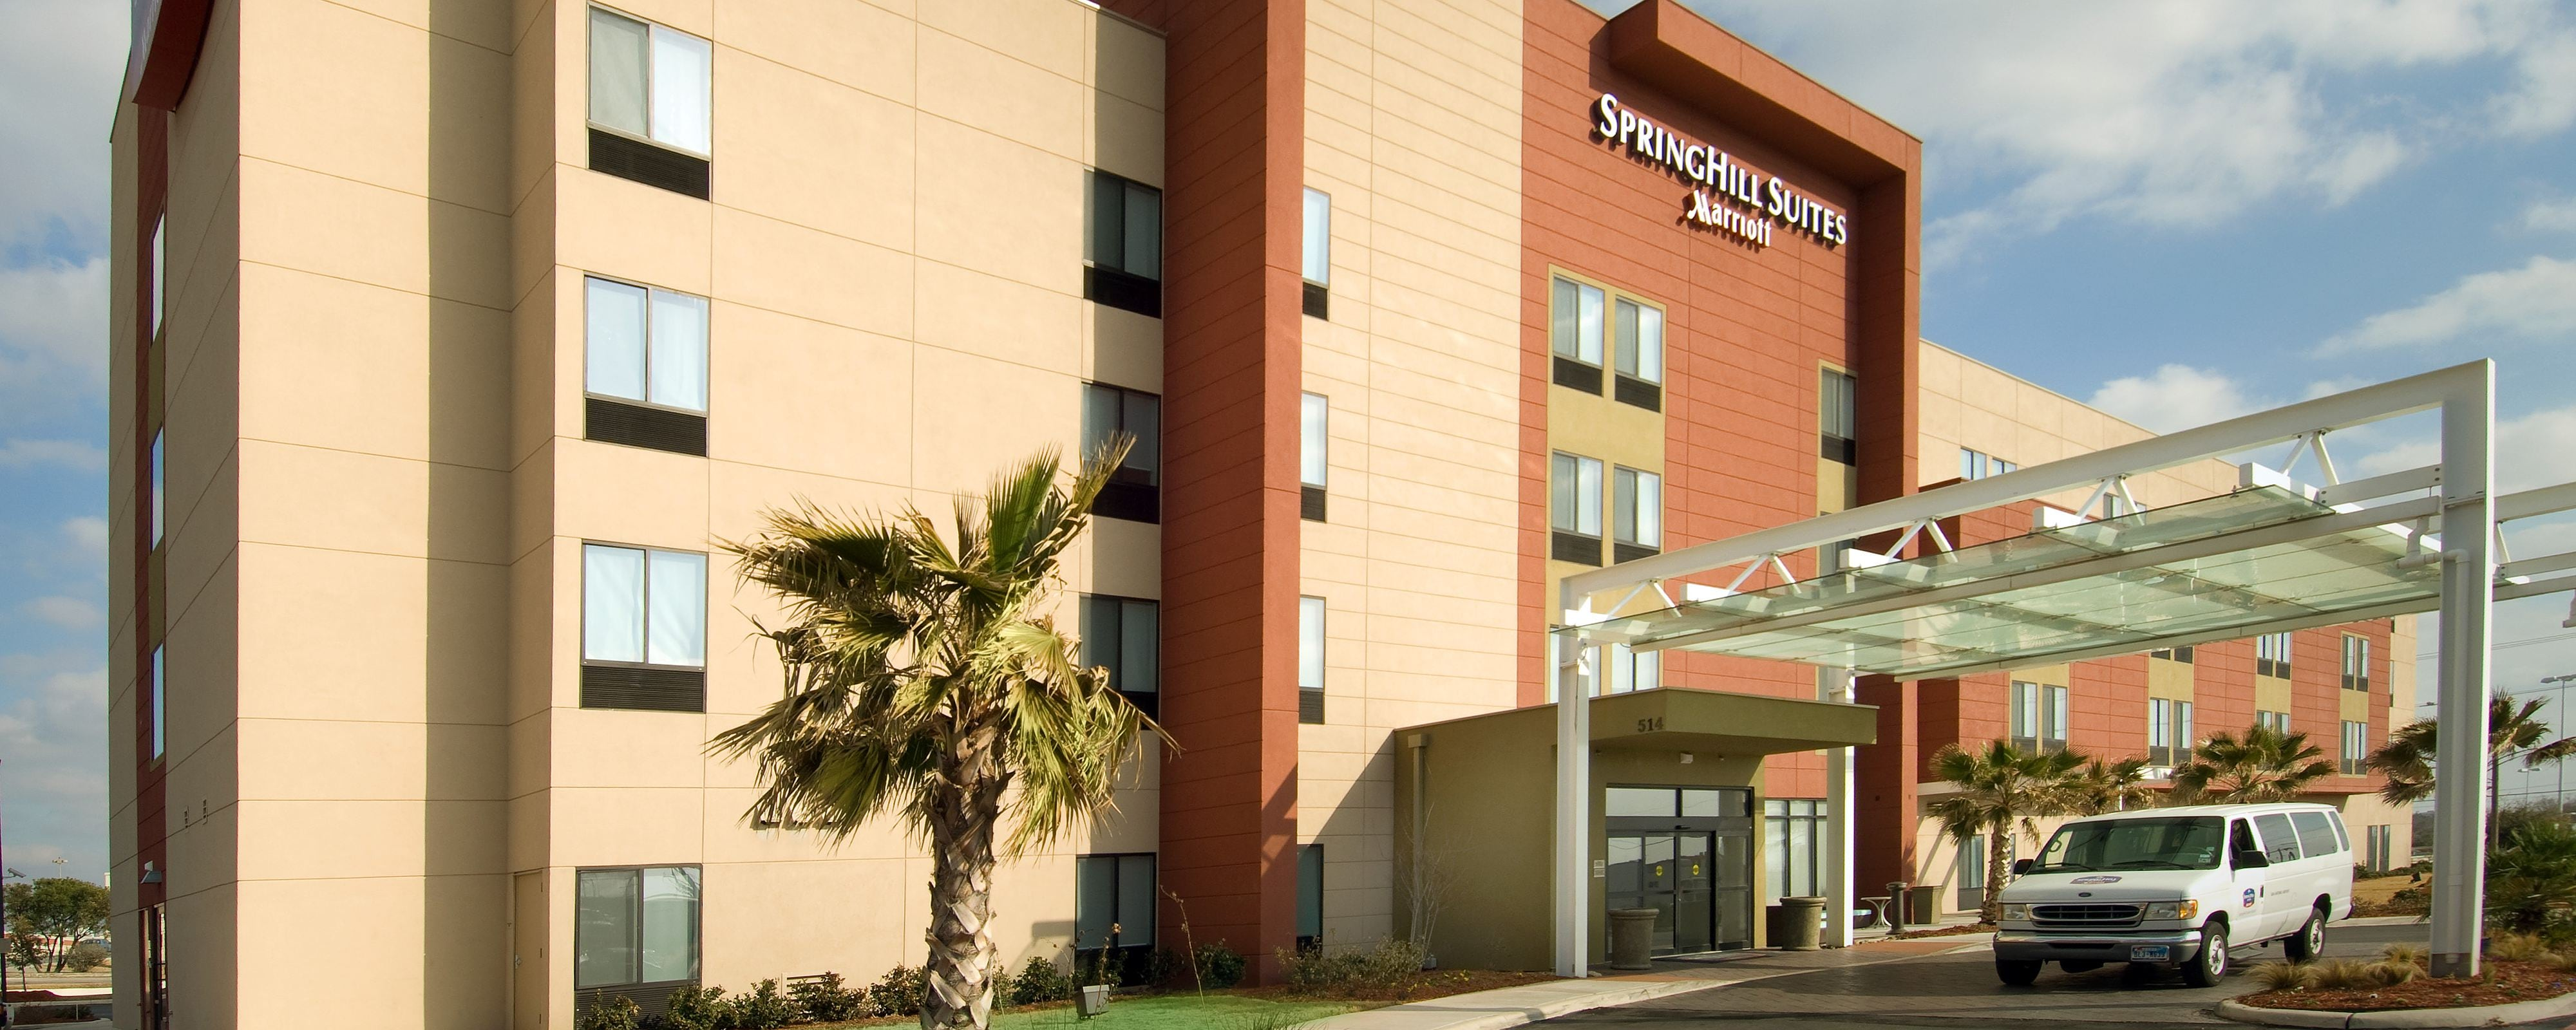 San Antonio International Airport Hotels Springhill Suites